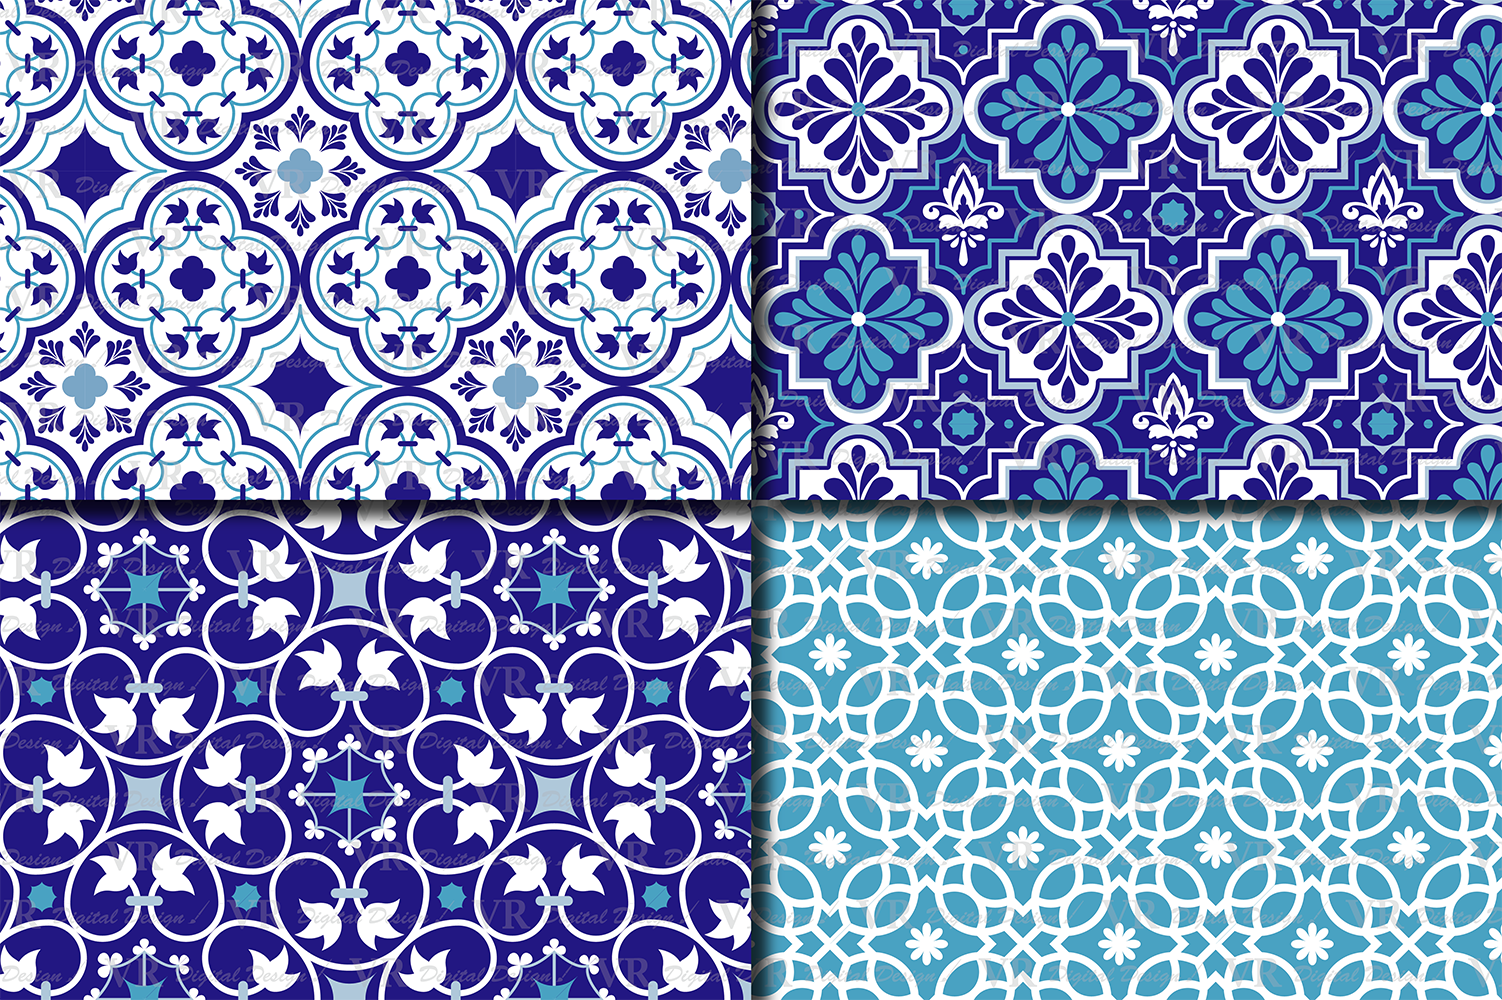 Blue Moroccan Digital Paper Pack / Blue Ethnic Tribal Geometric Ornamental Digital papers / Moroccan backgrounds / Scrapbooking Printable paper example image 2